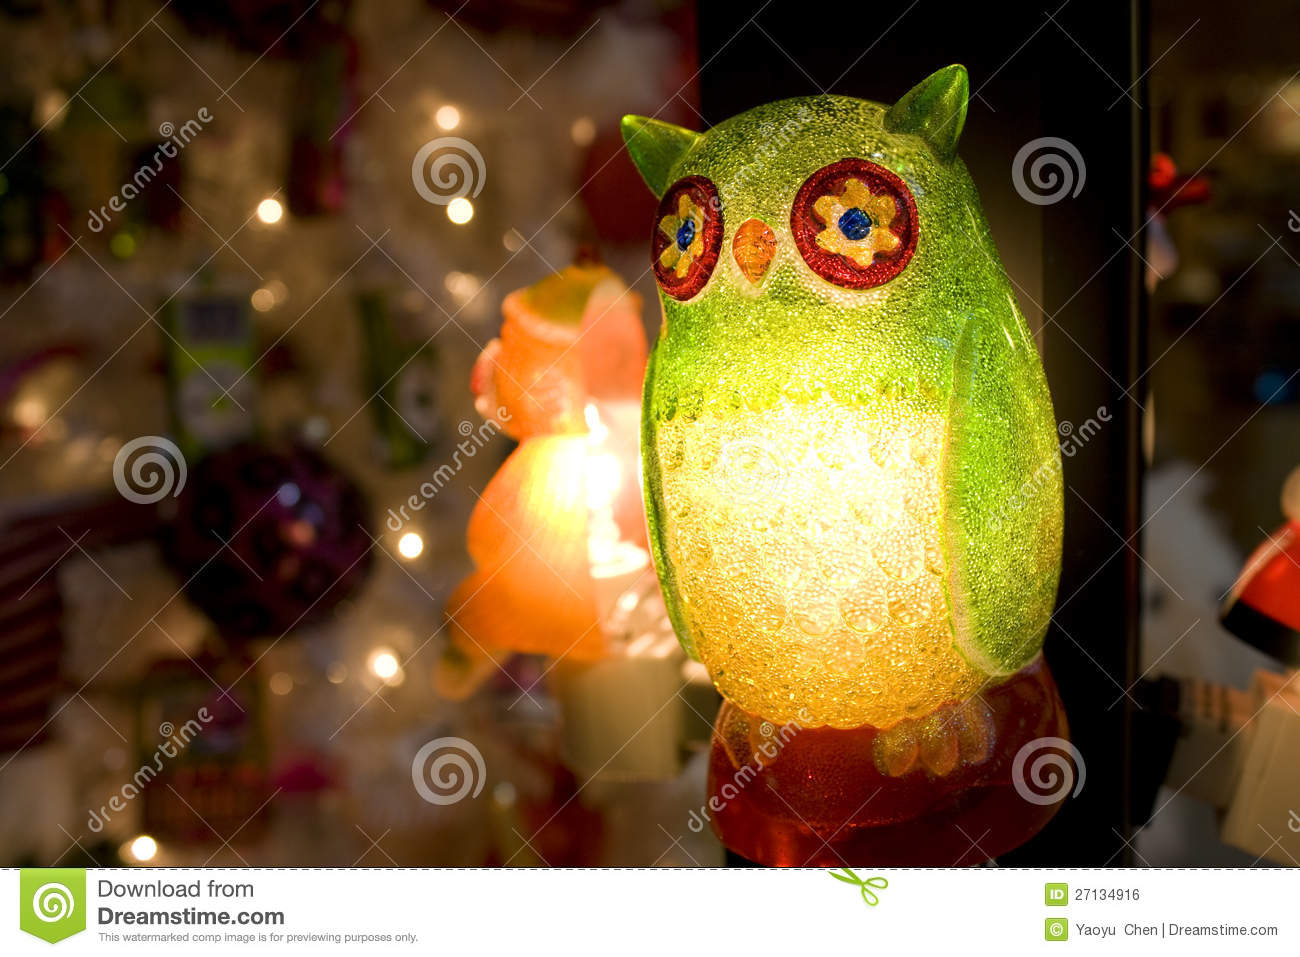 Owl Christmas light stock photo. Image of postcard, home - 27134916